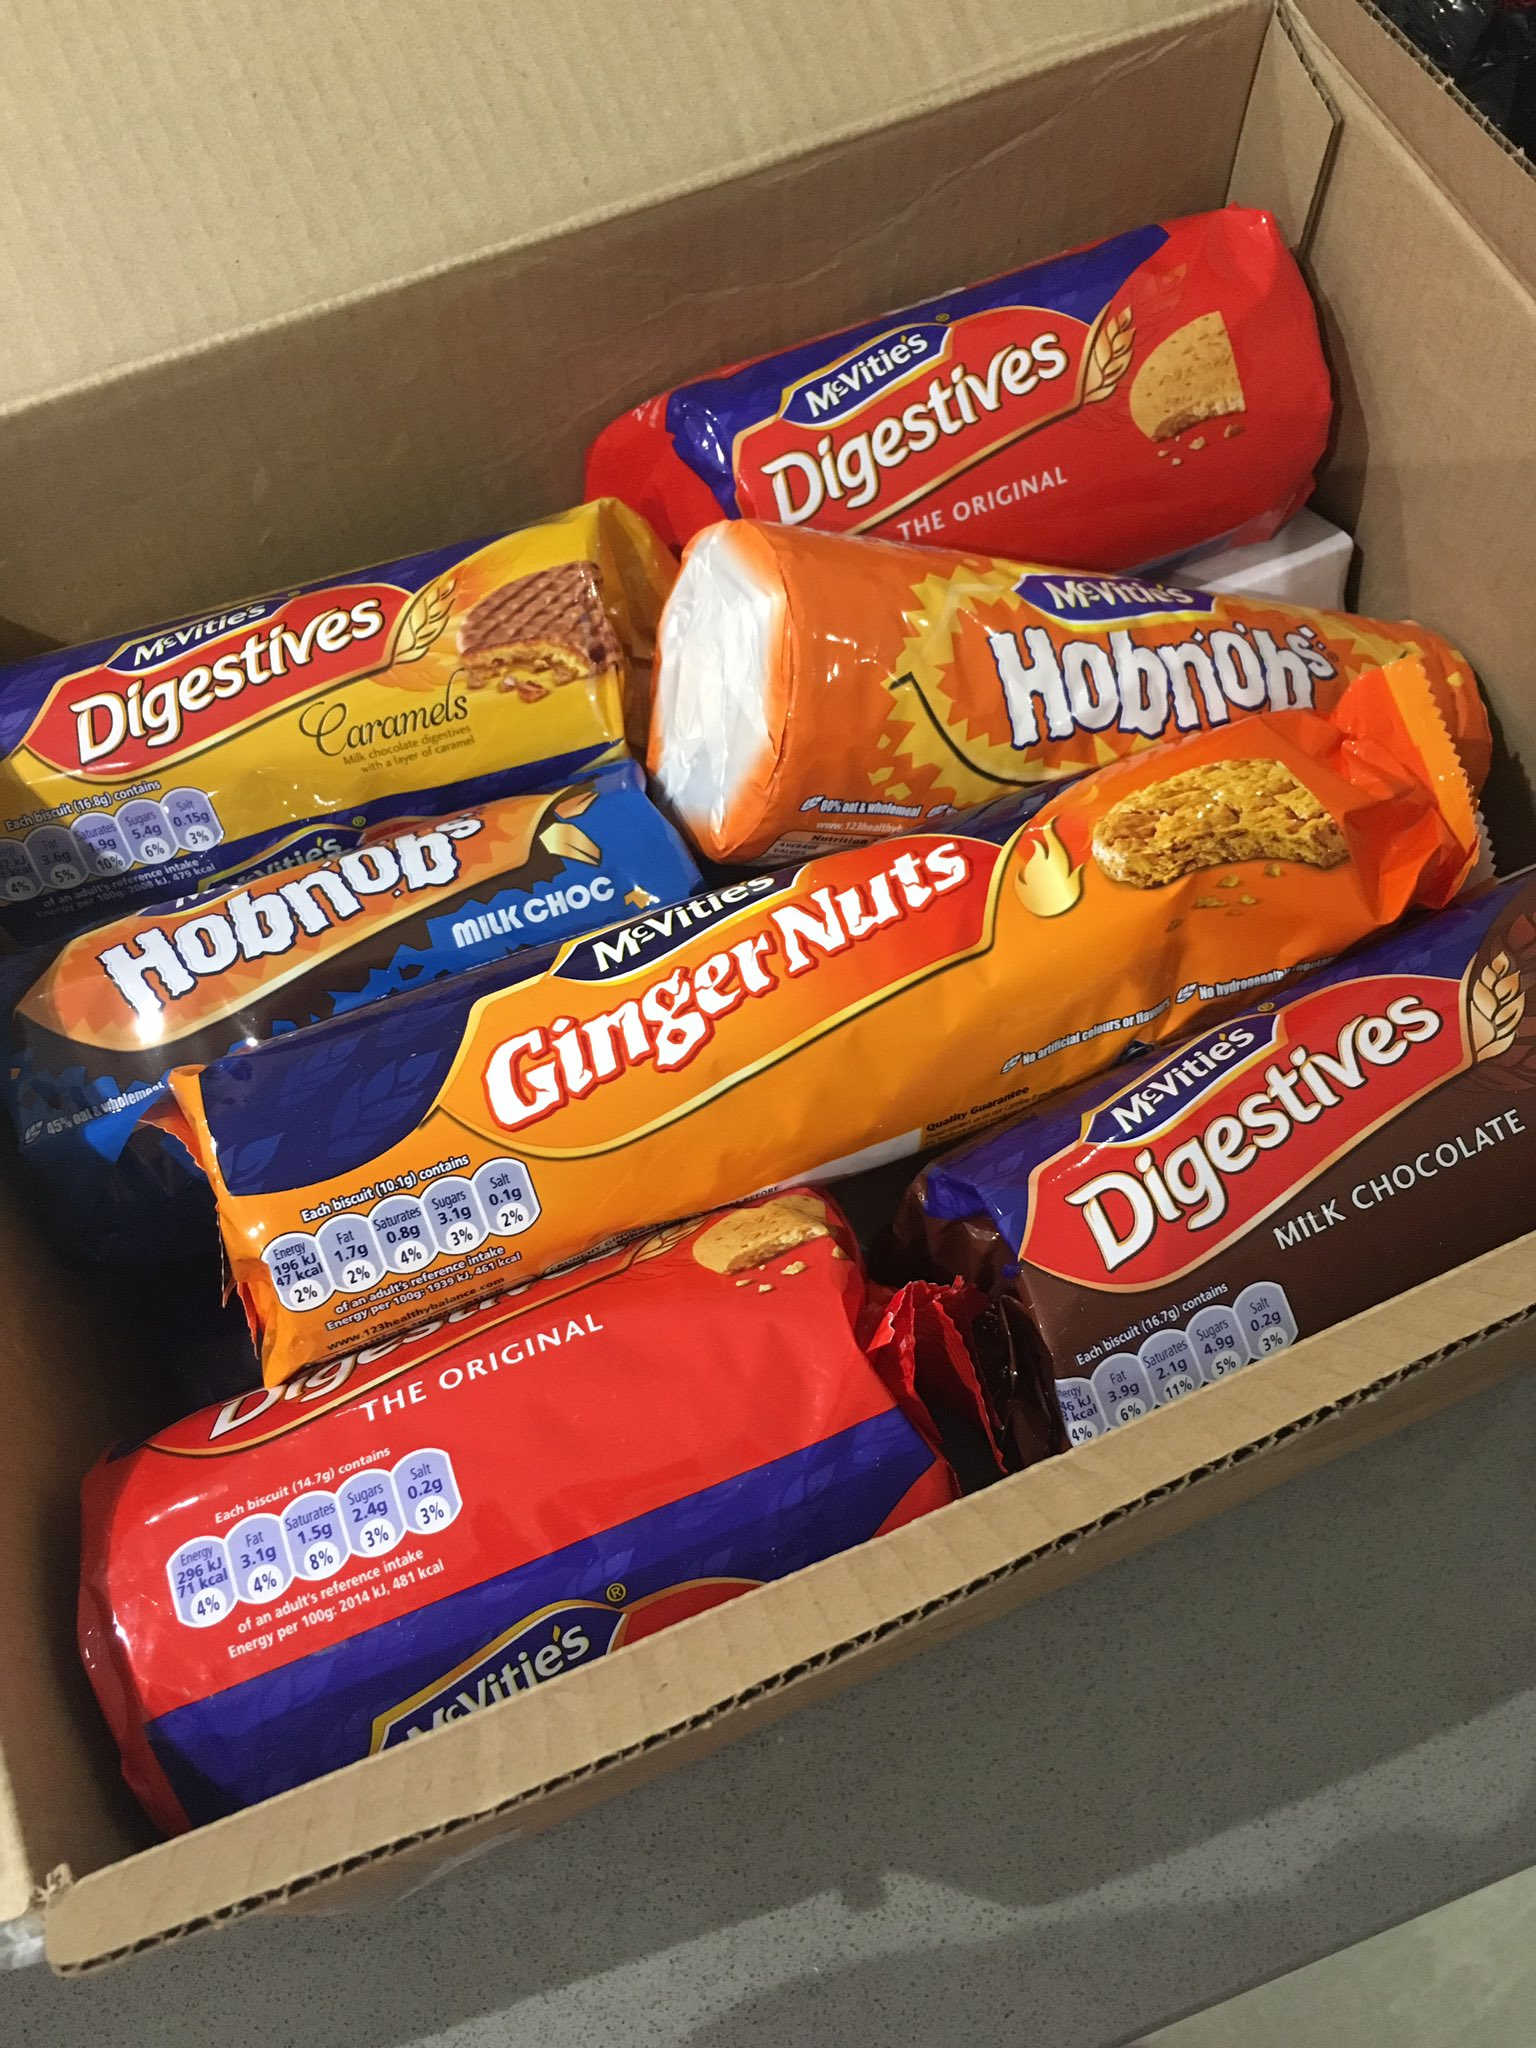 Thank you @McVities 😋 #NationalBiscuitDay #Sweeet can wait to have these with a cuppa!! https://t.co/y0FNfGEfMA